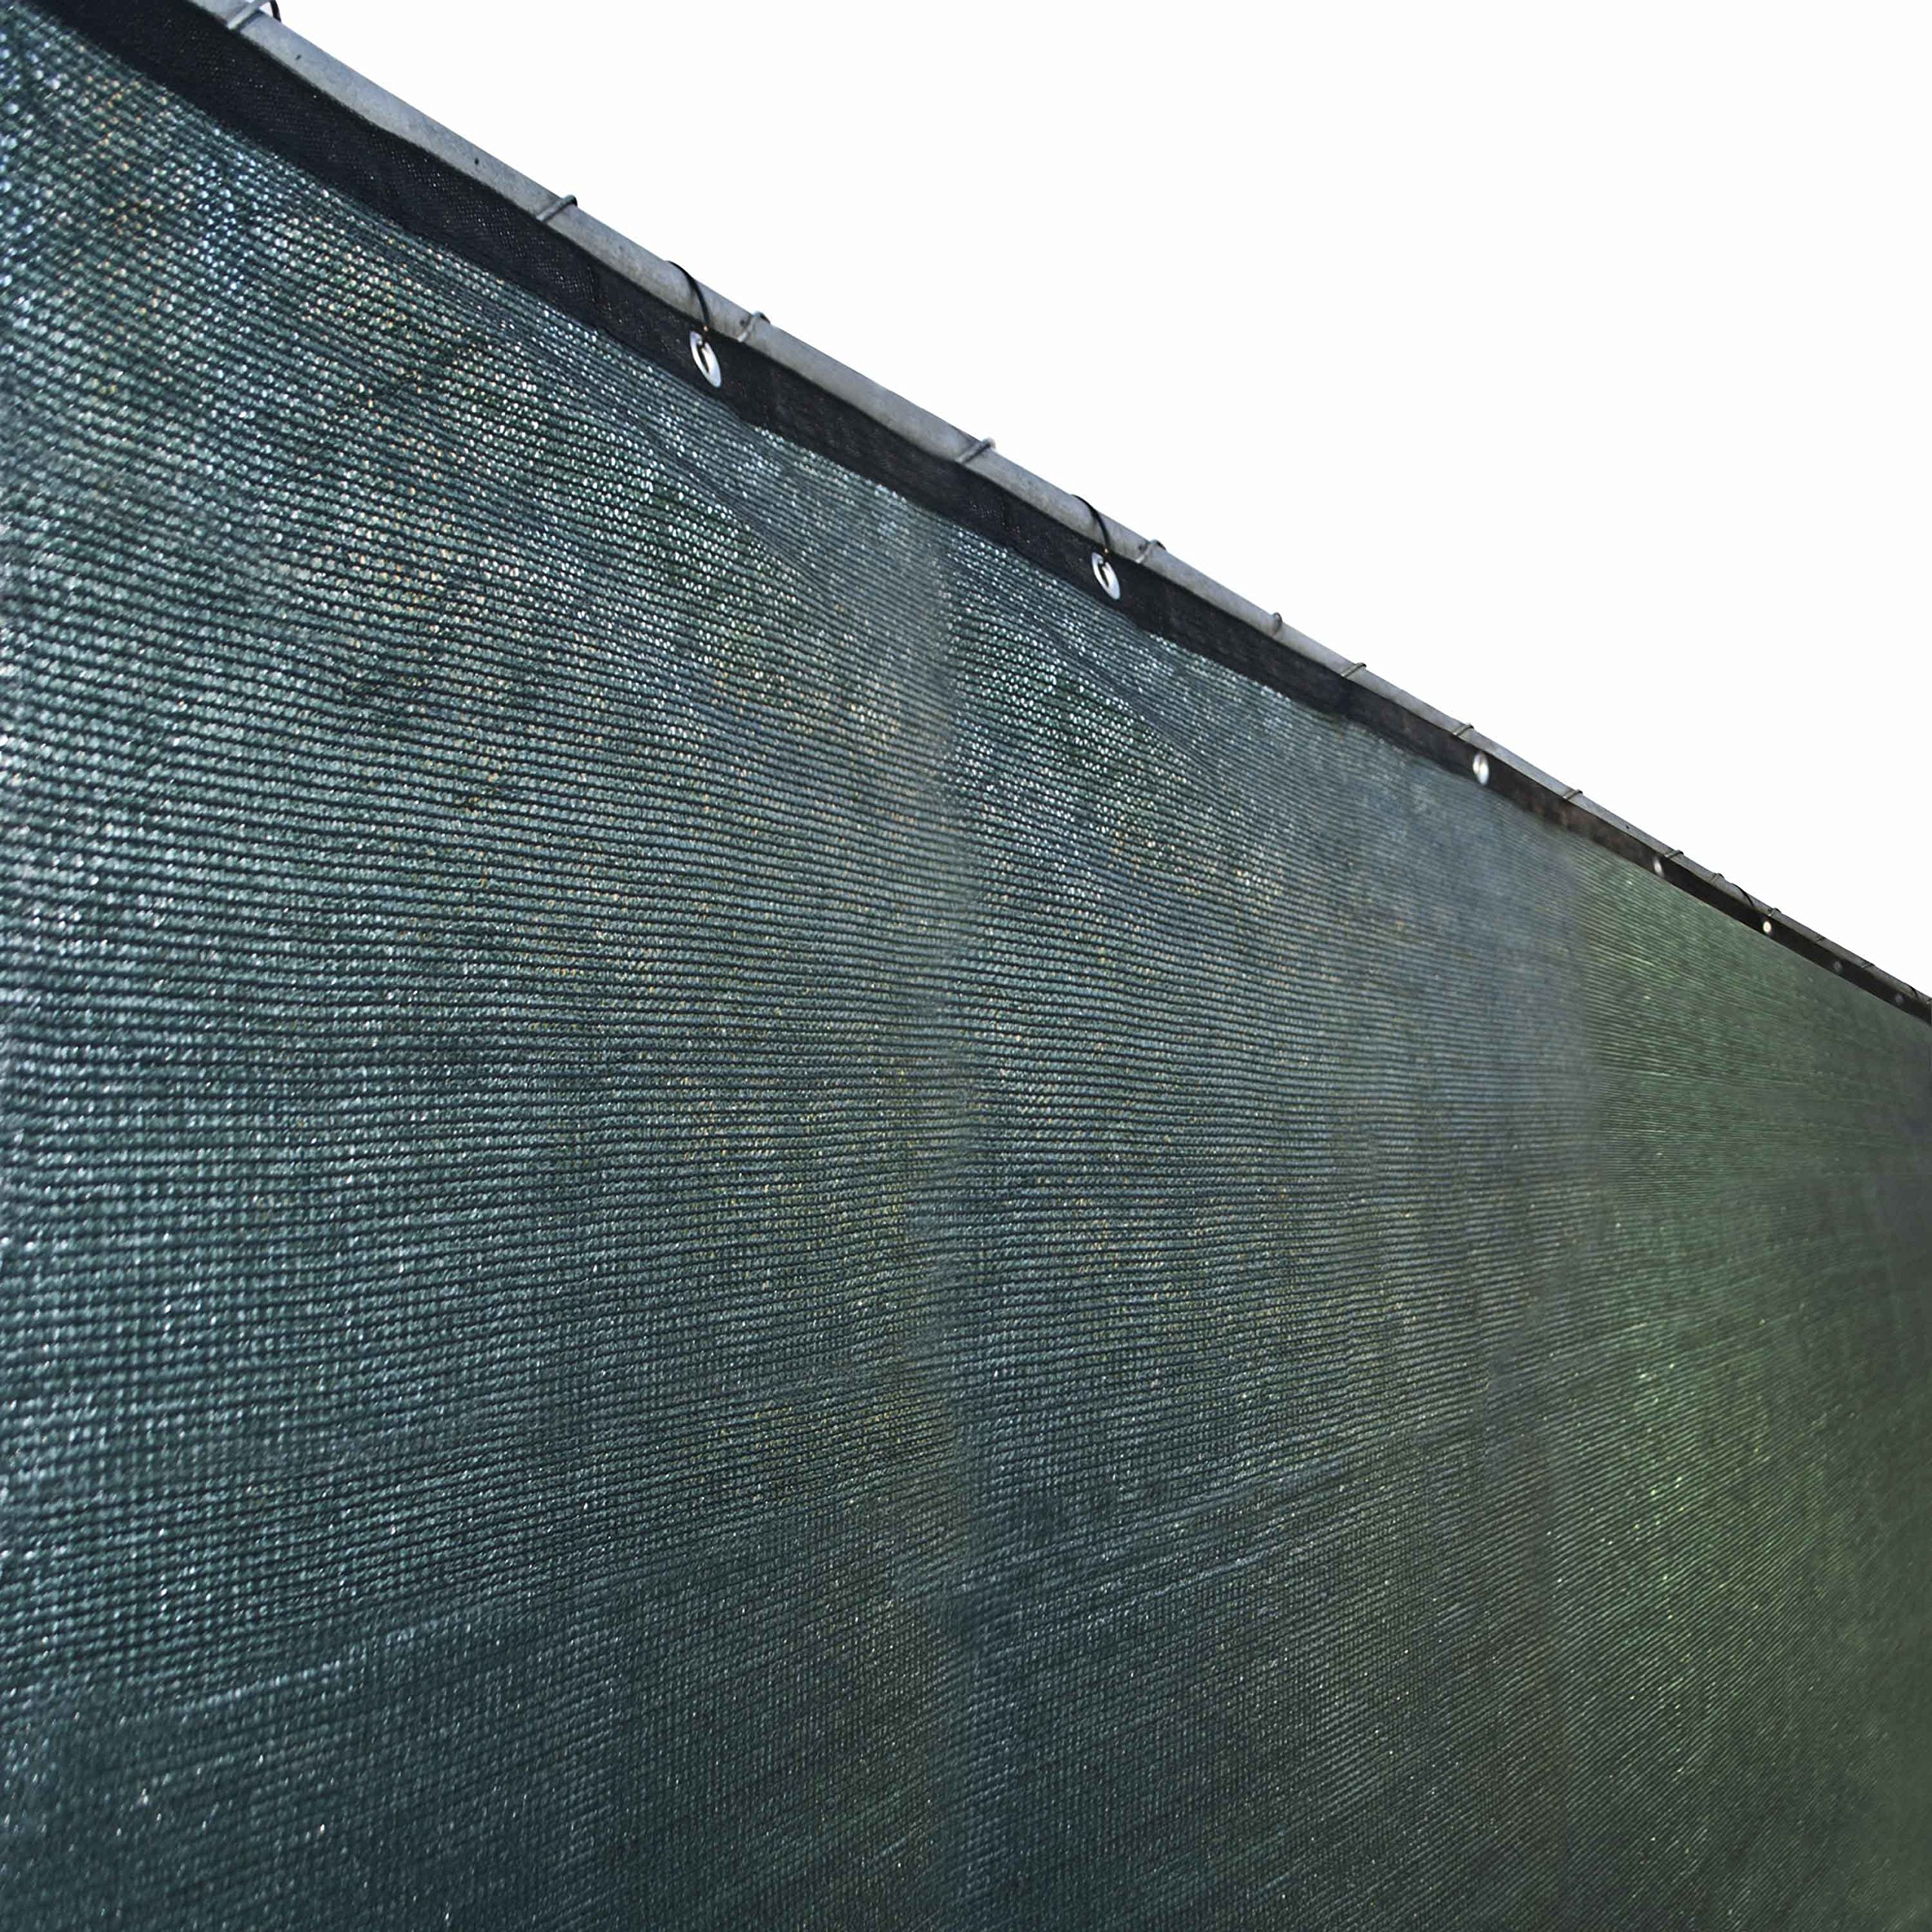 ALEKO PLK0650DG Fence Privacy Screen Outdoor Backyard Fencing Windscreen Shade Cover Mesh Fabric with Grommets 6 x 50 Feet Dark Green